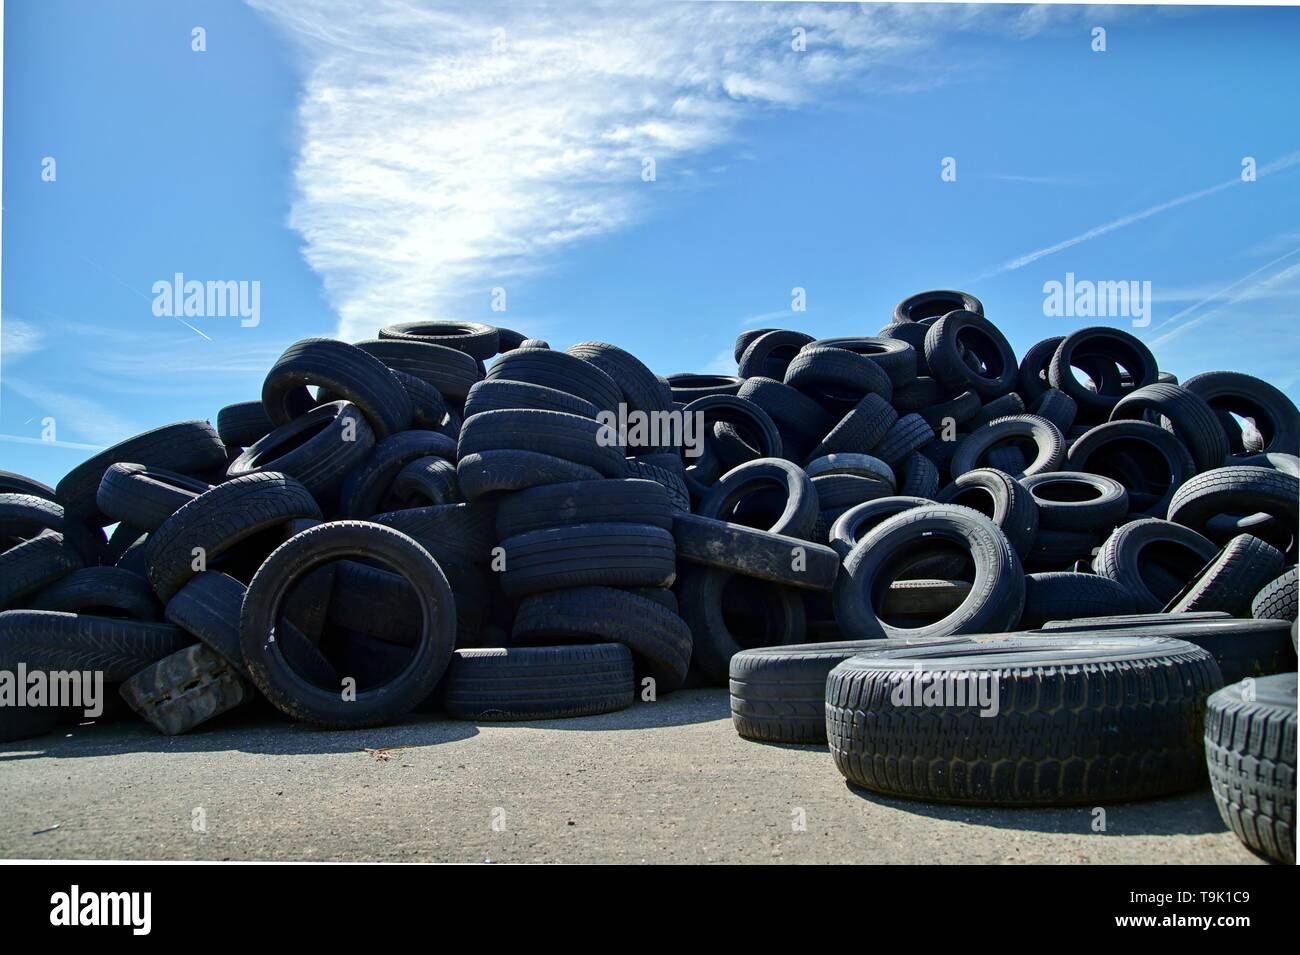 Tires Heap - Used old Tyres Many car and truck tires on dump site. Ecology background or texture concept. Scrap yard scenery. - Stock Image